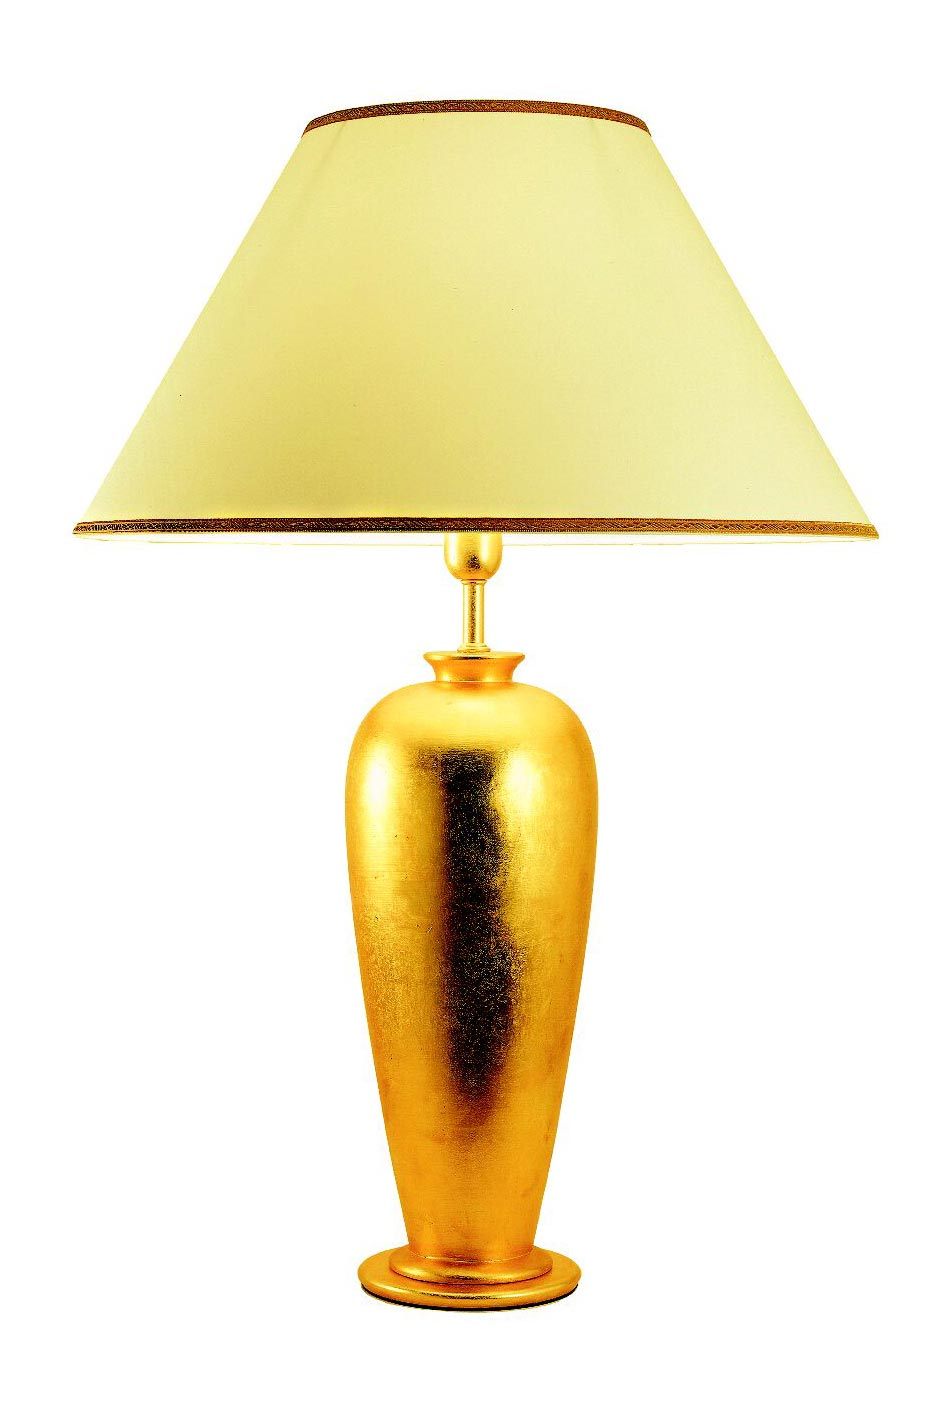 Gold leaf lamp on ceramic Wetar rounded model. Estro.